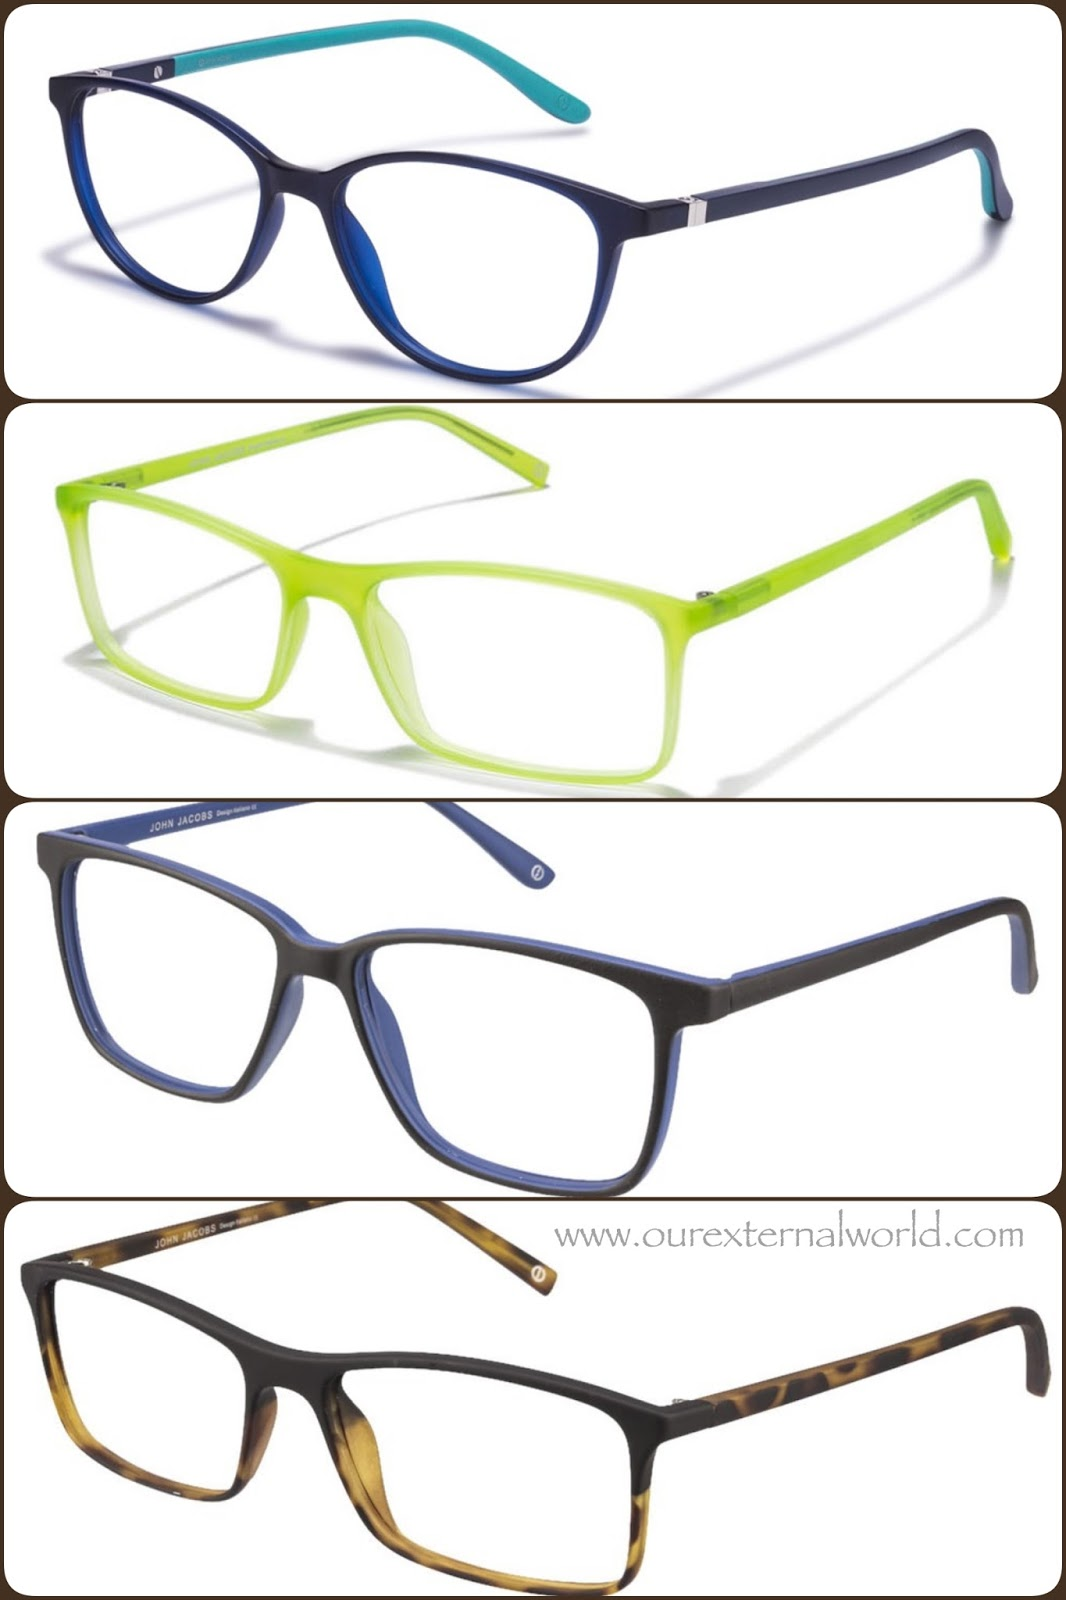 f60e2b4d65 mens eyewear - John Jacobs slim collection